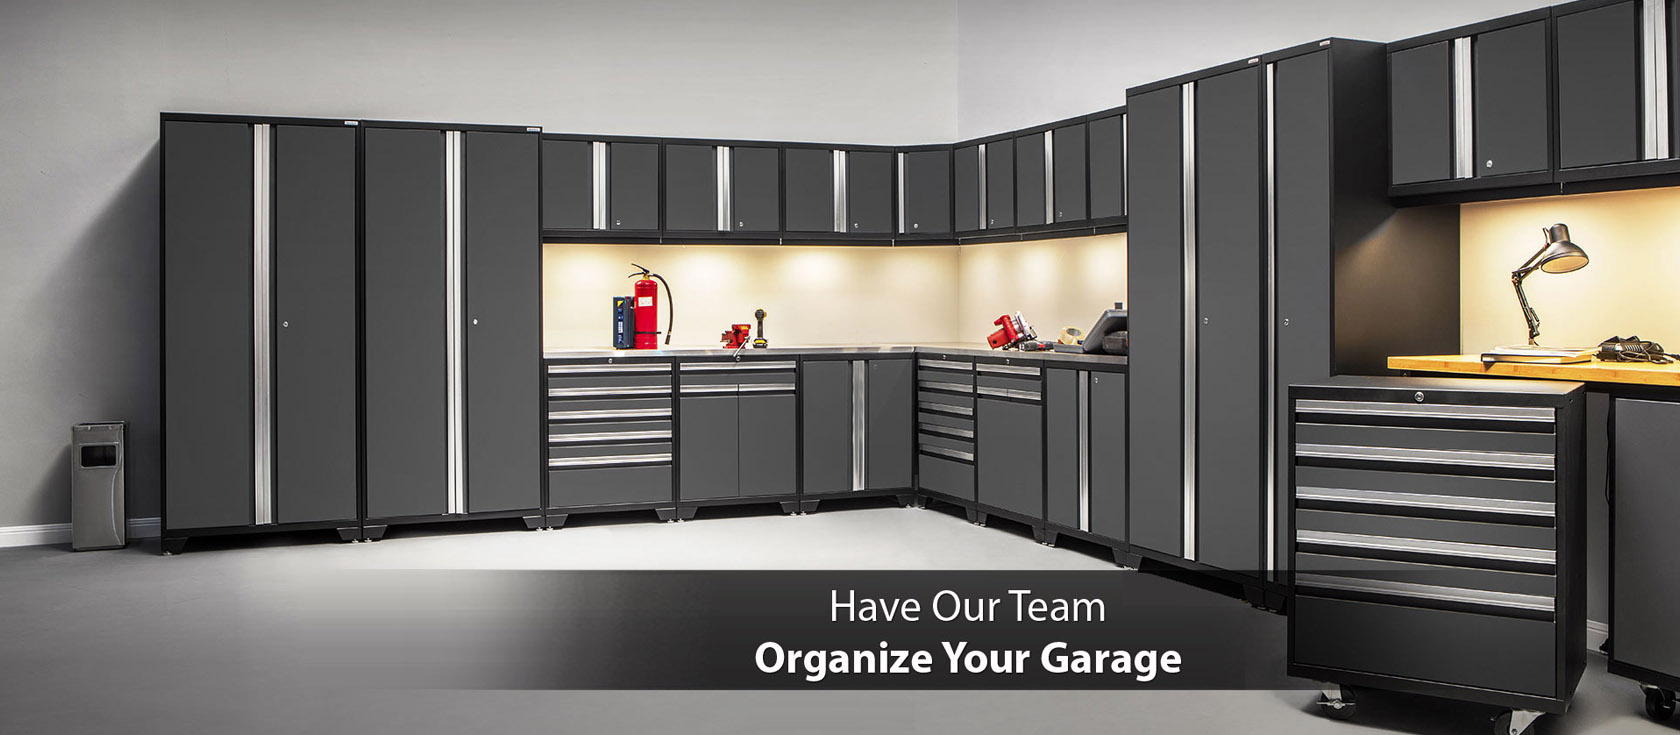 it does mid refresh to on garage with budget renovate storage estimates how range renovation cabinets tall much costs workbench a and project renovated drawers cost renovations